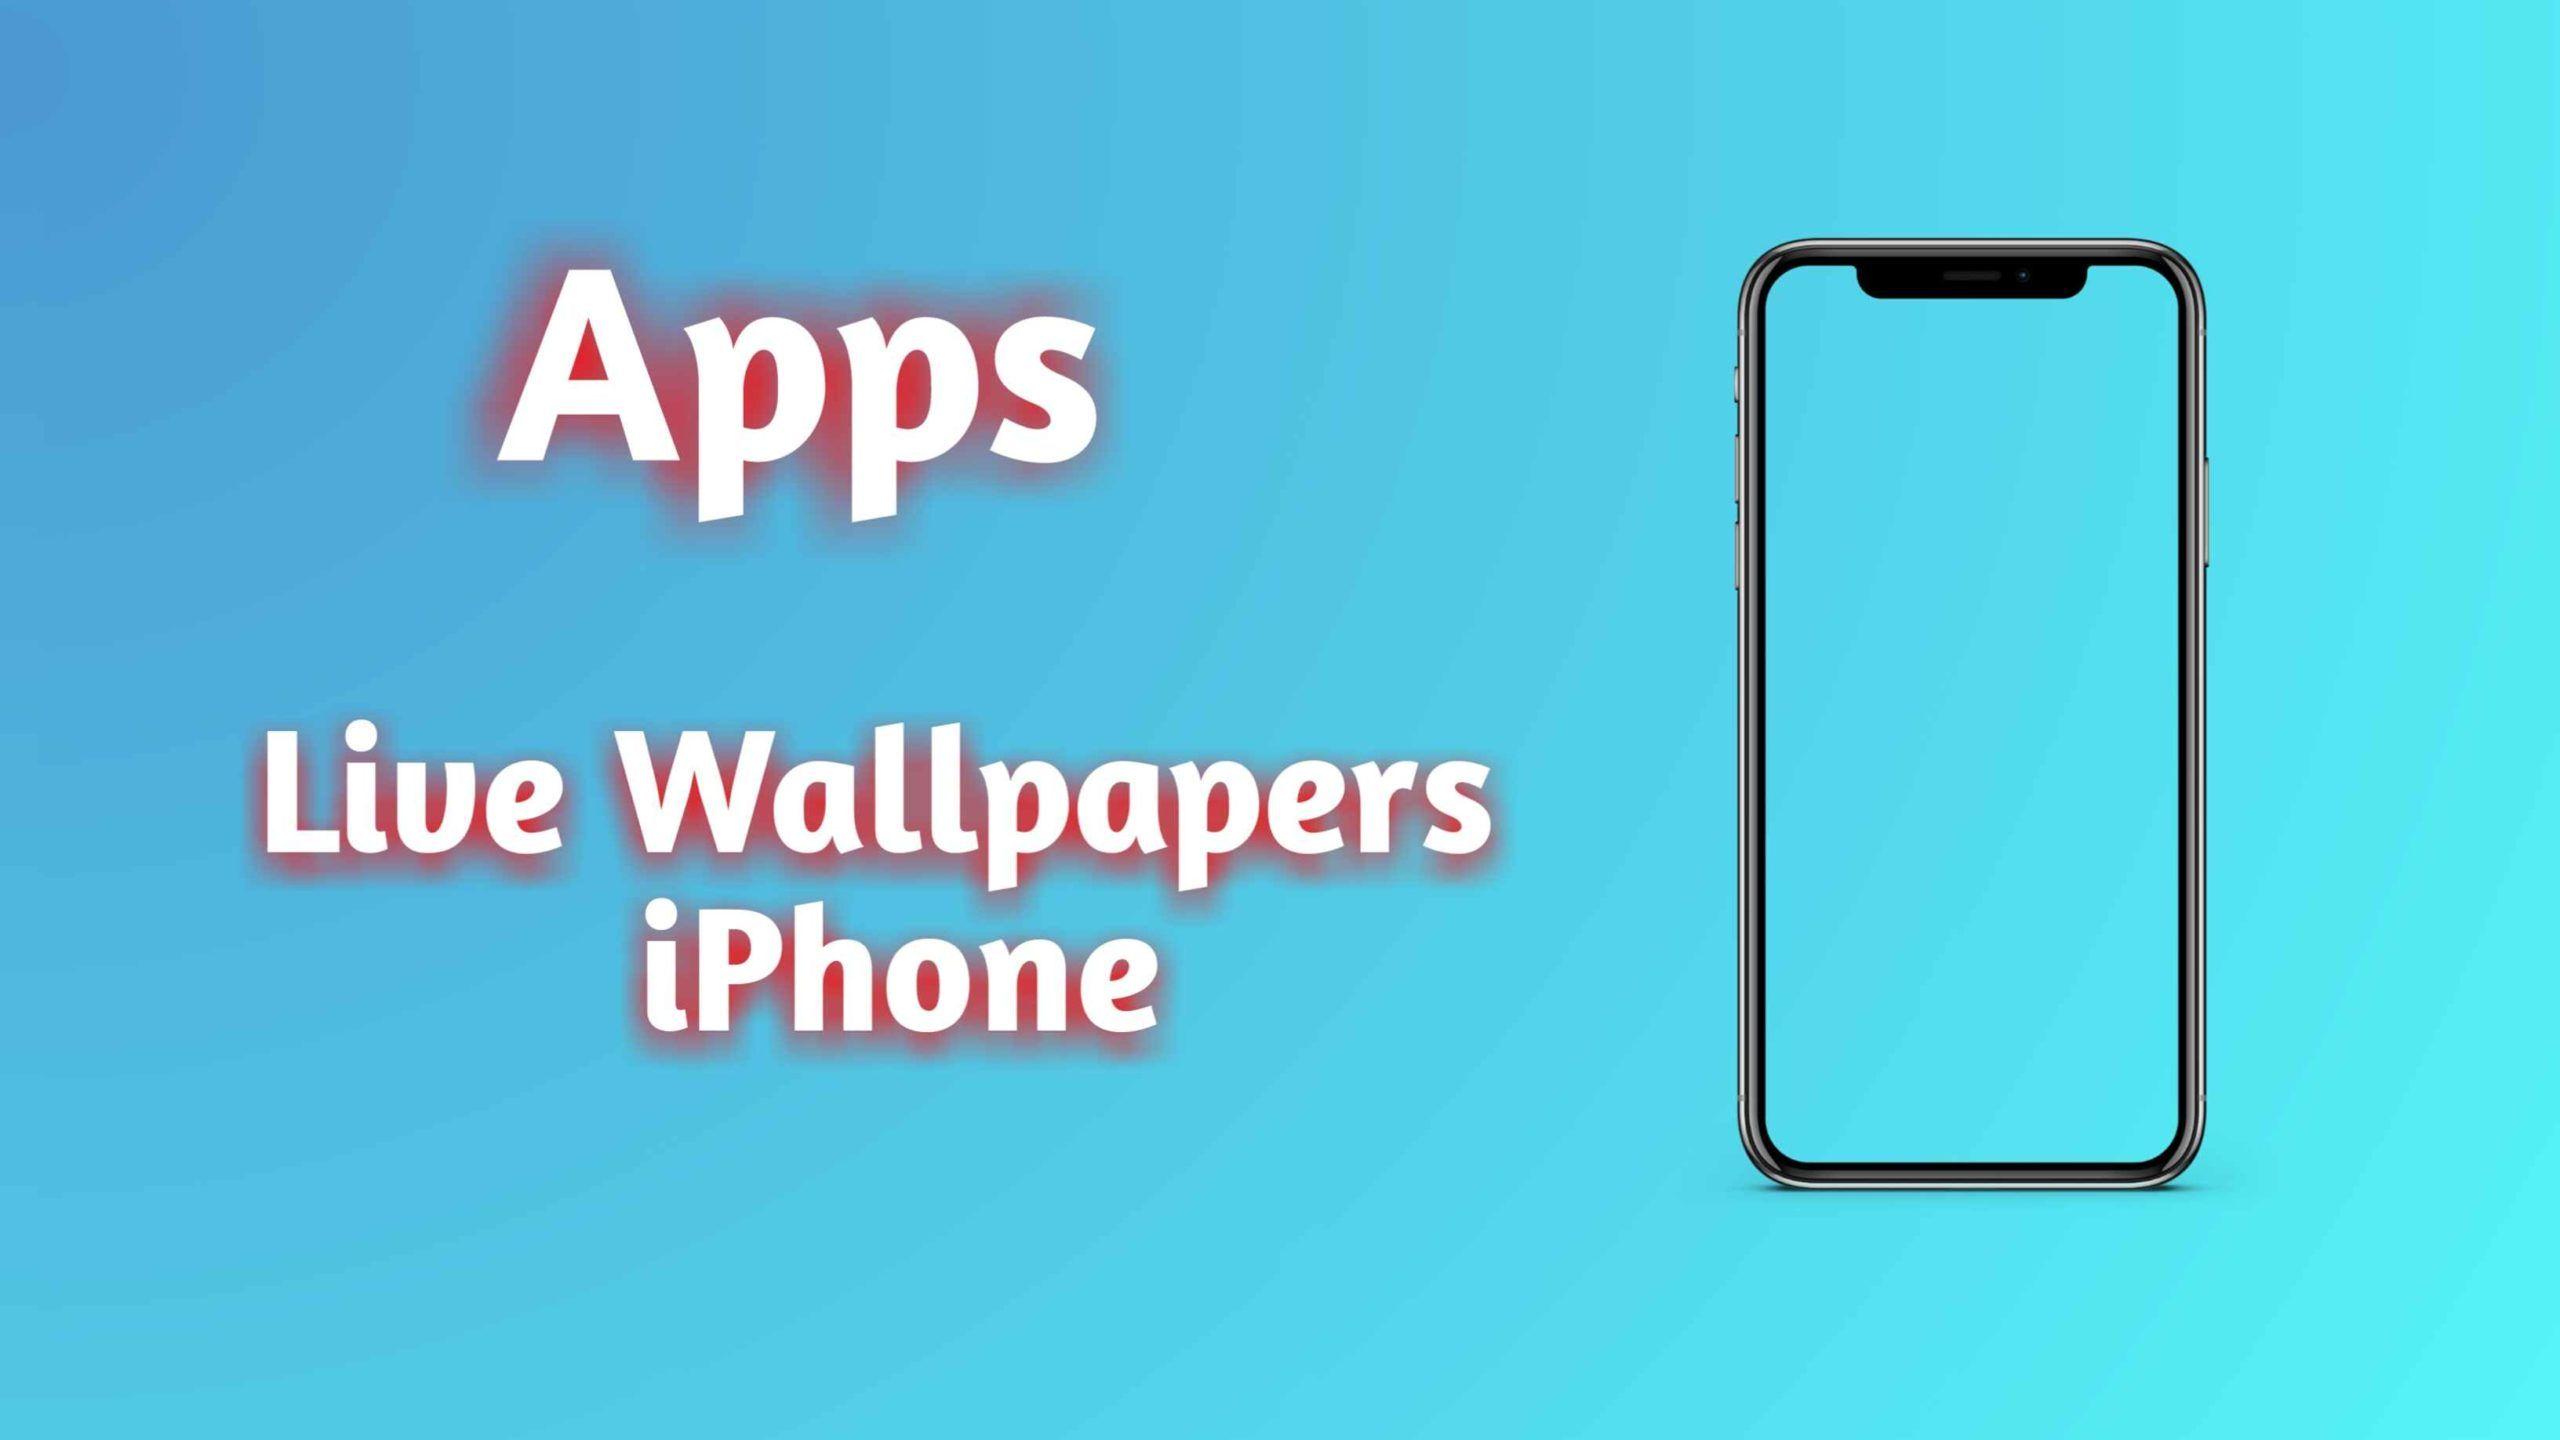 Best Apps Live Wallpaper For Iphone 2020 Live Wallpaper Iphone Iphone Wallpaper Live Wallpapers